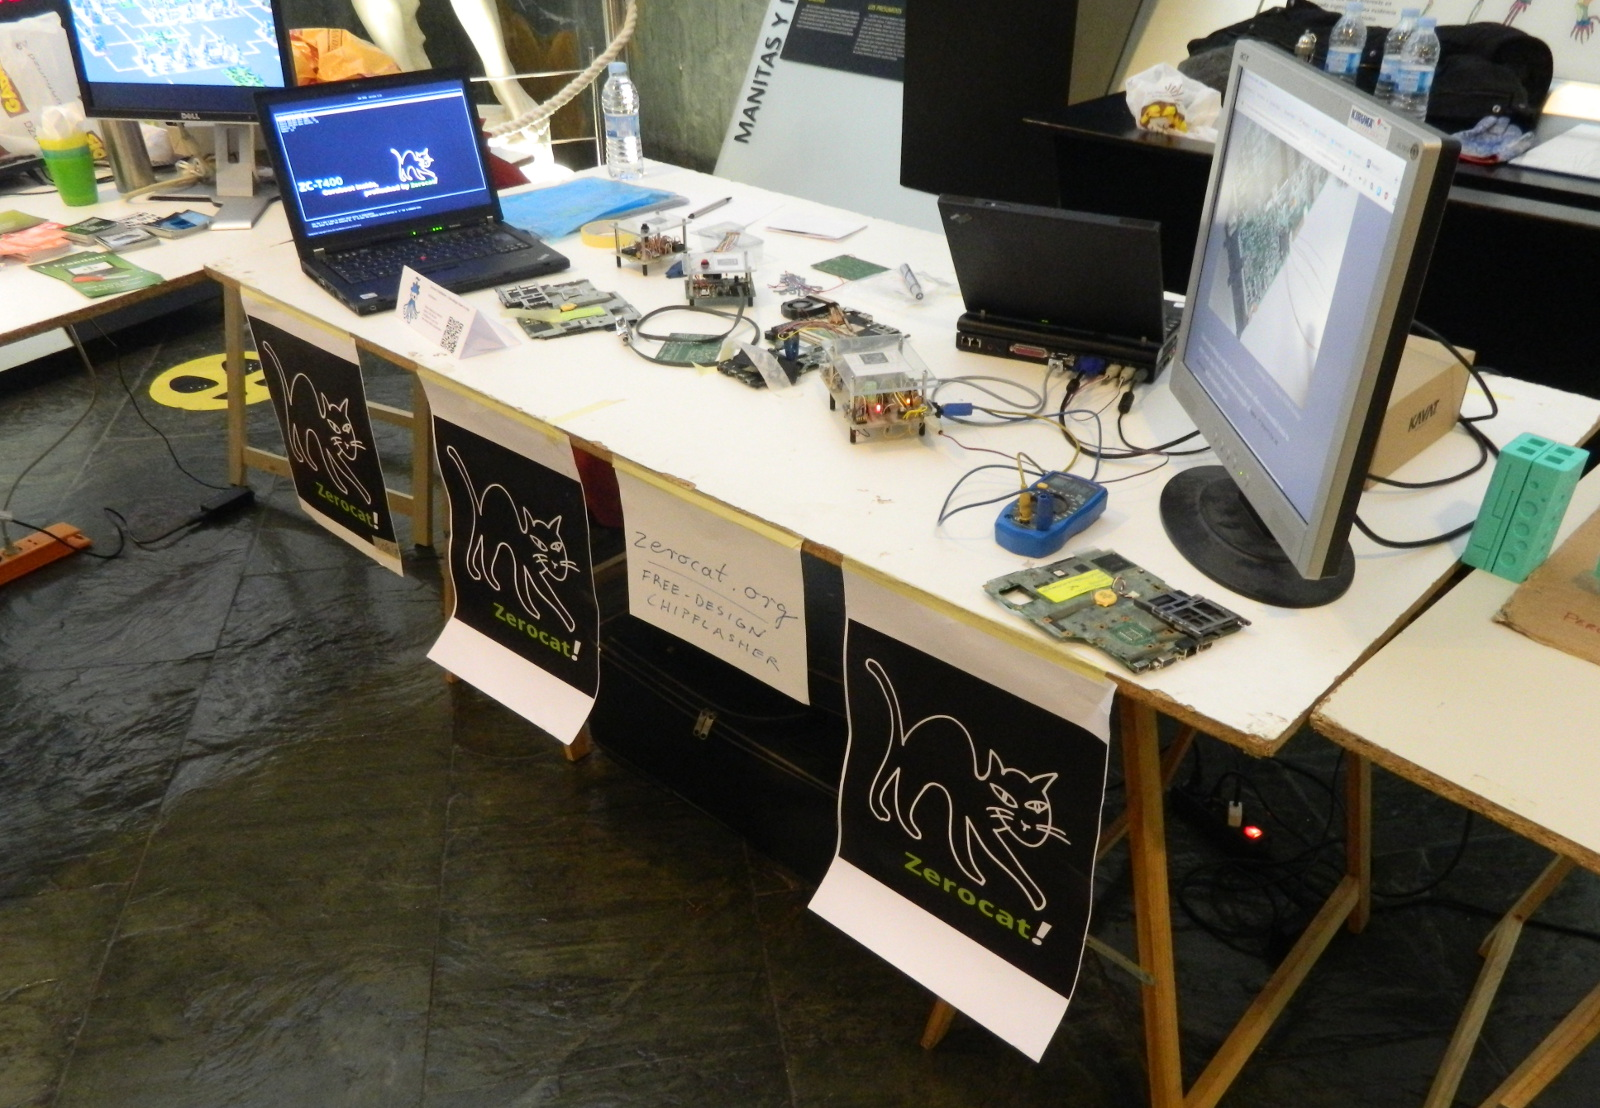 Zerocat's Booth on the OSHWDem2017